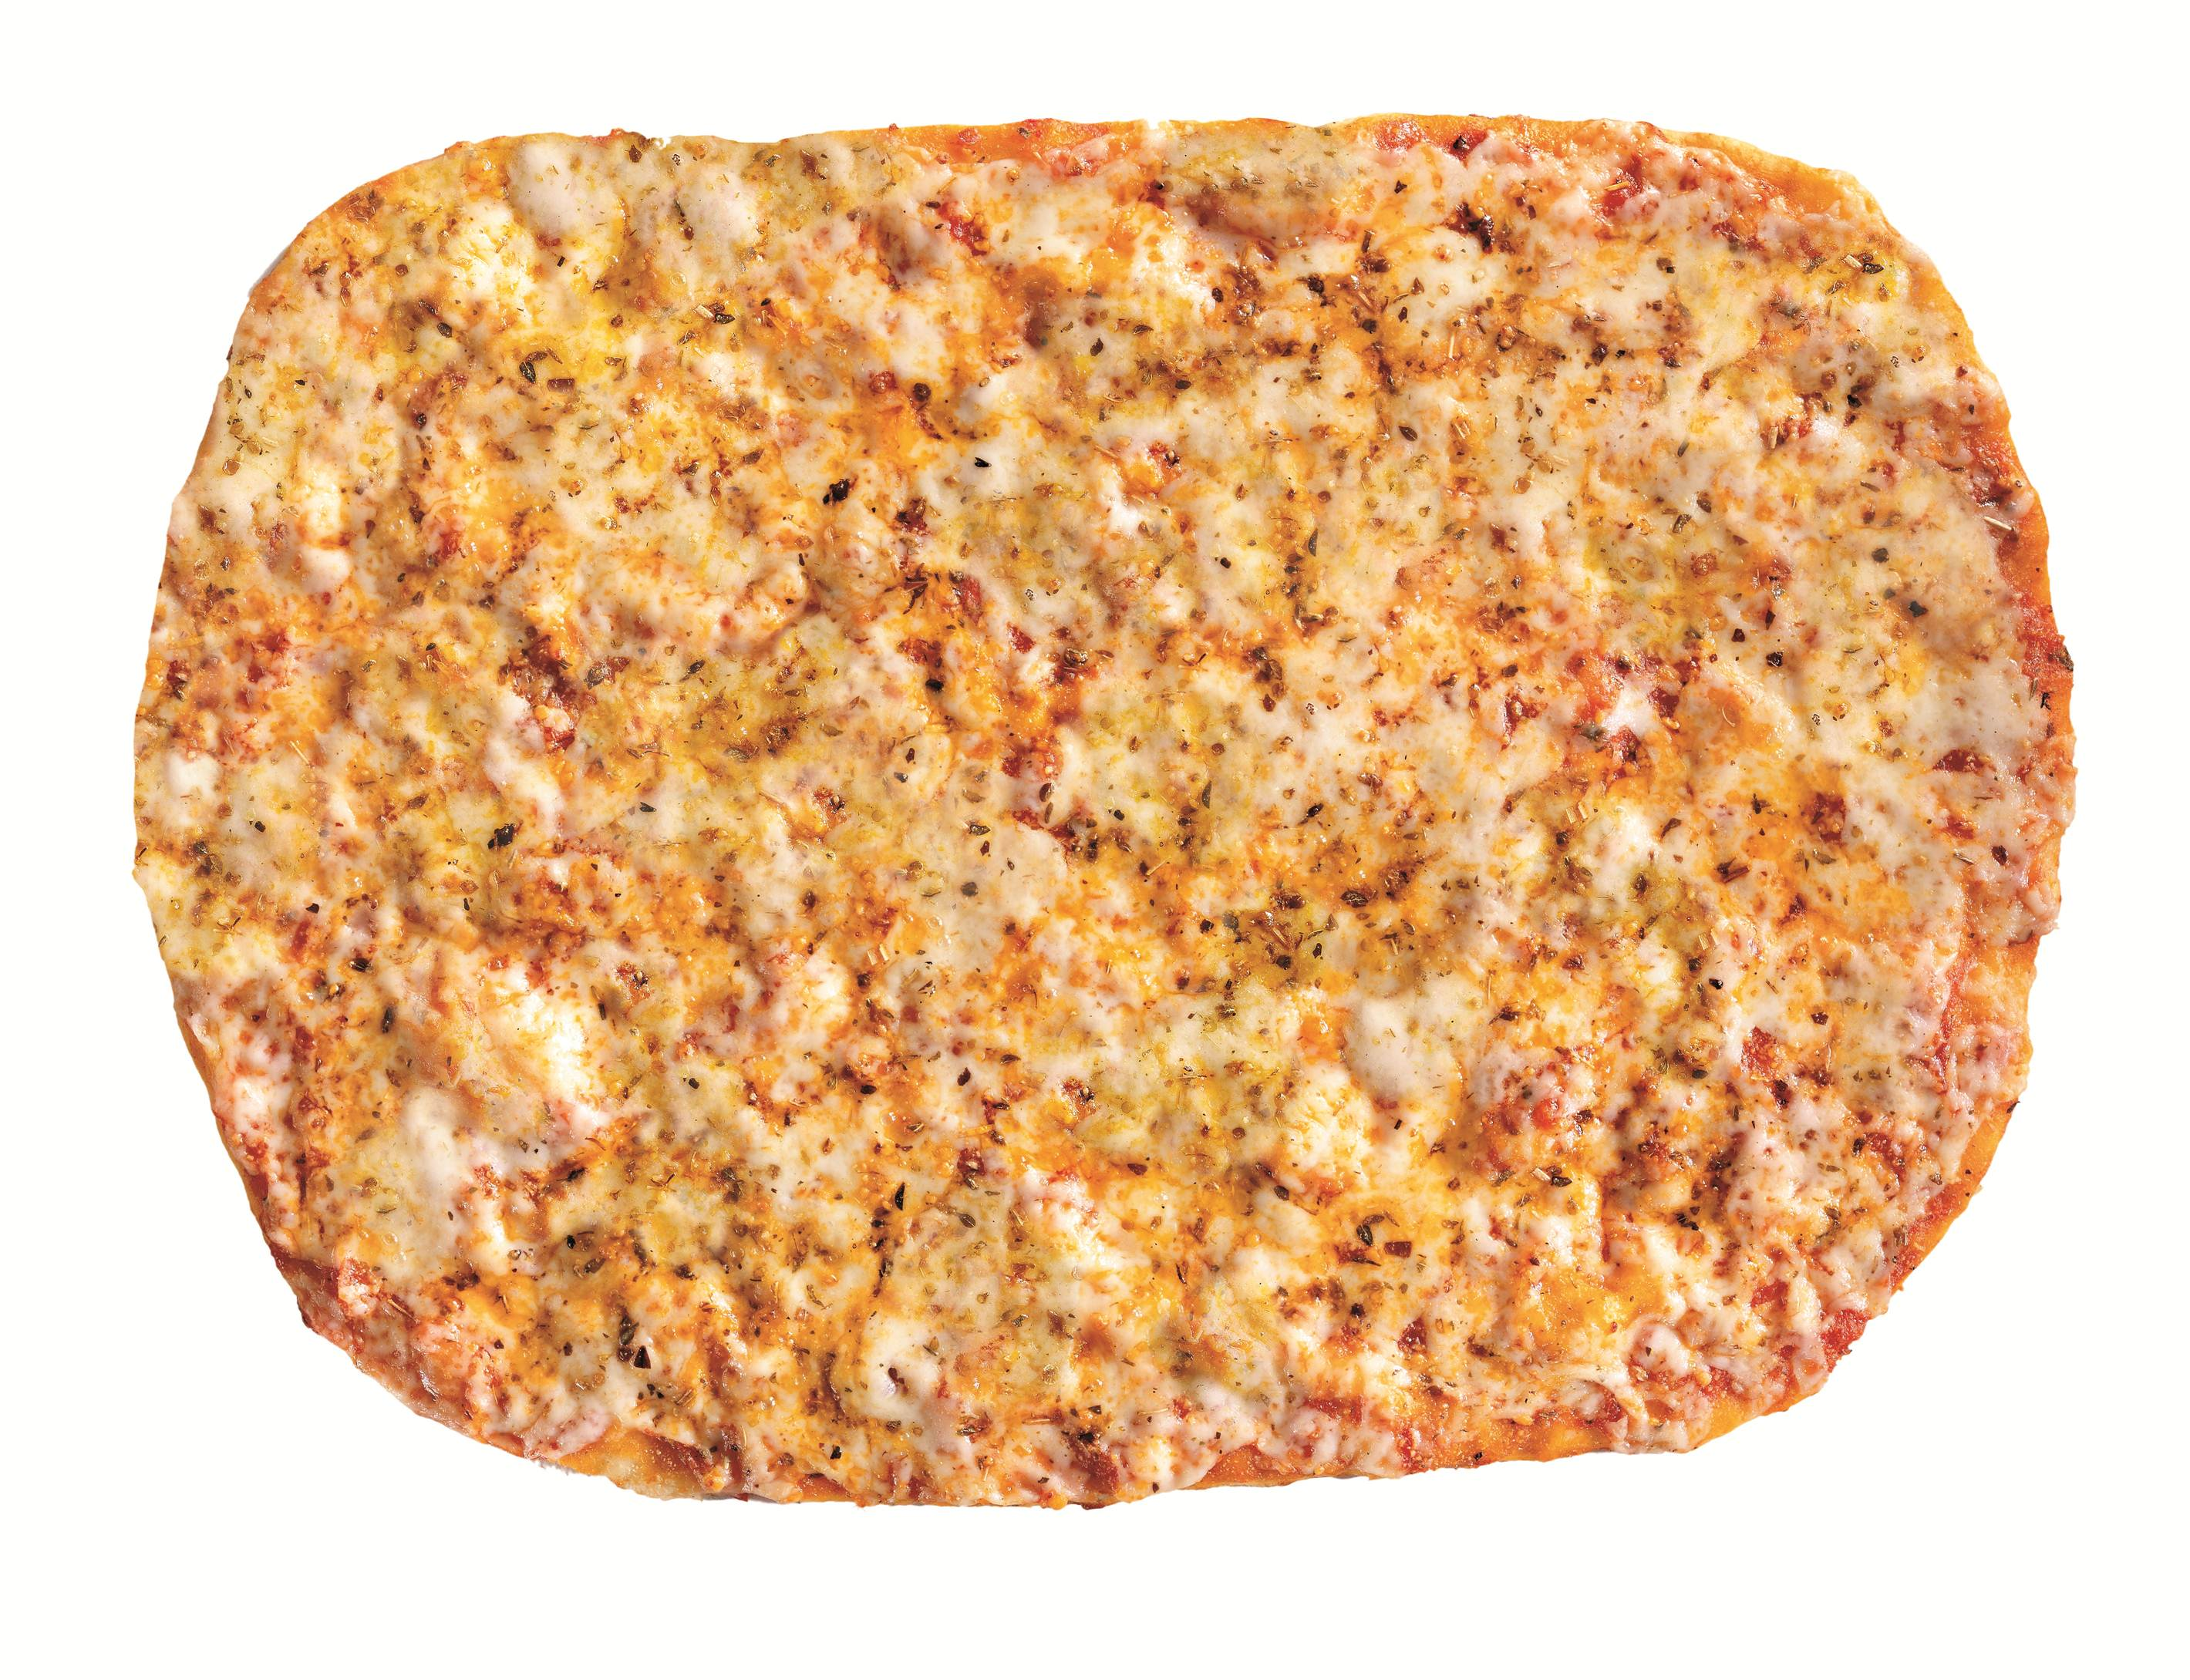 The Meltdown, made with Parmesan, Romano and mozzarella cheeses with signature Italiano sauce topped with an oregano seasoning blend on a thin, crisp Italiano crust.